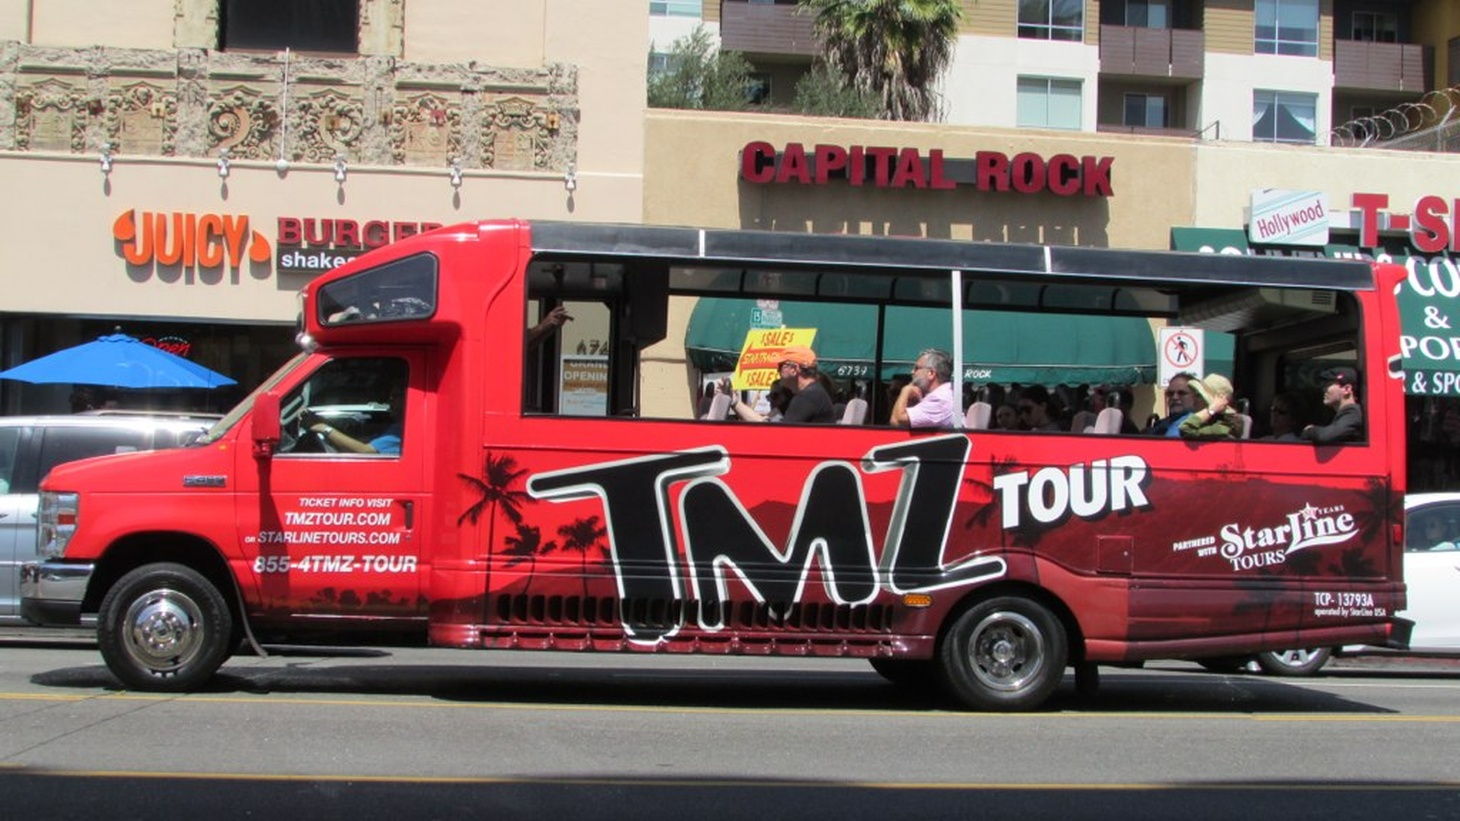 A tour bus in Los Angeles.